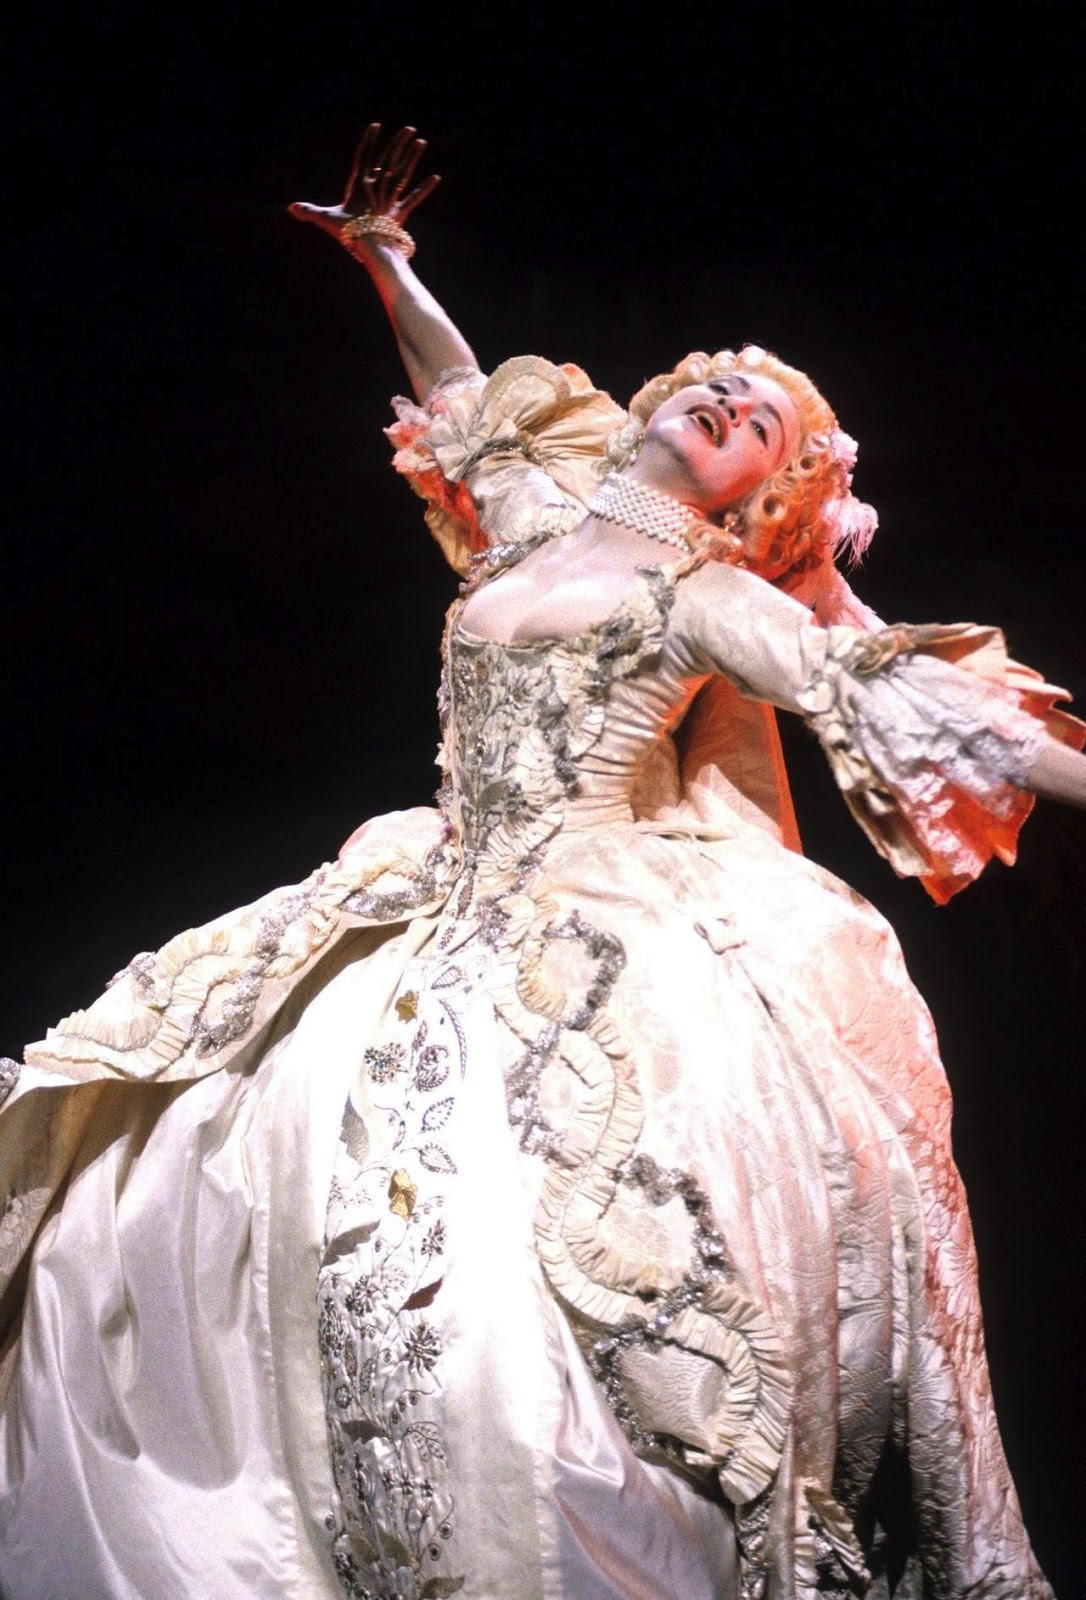 Amomadonna Madonna Performs Vogue At The Wiltern Theater